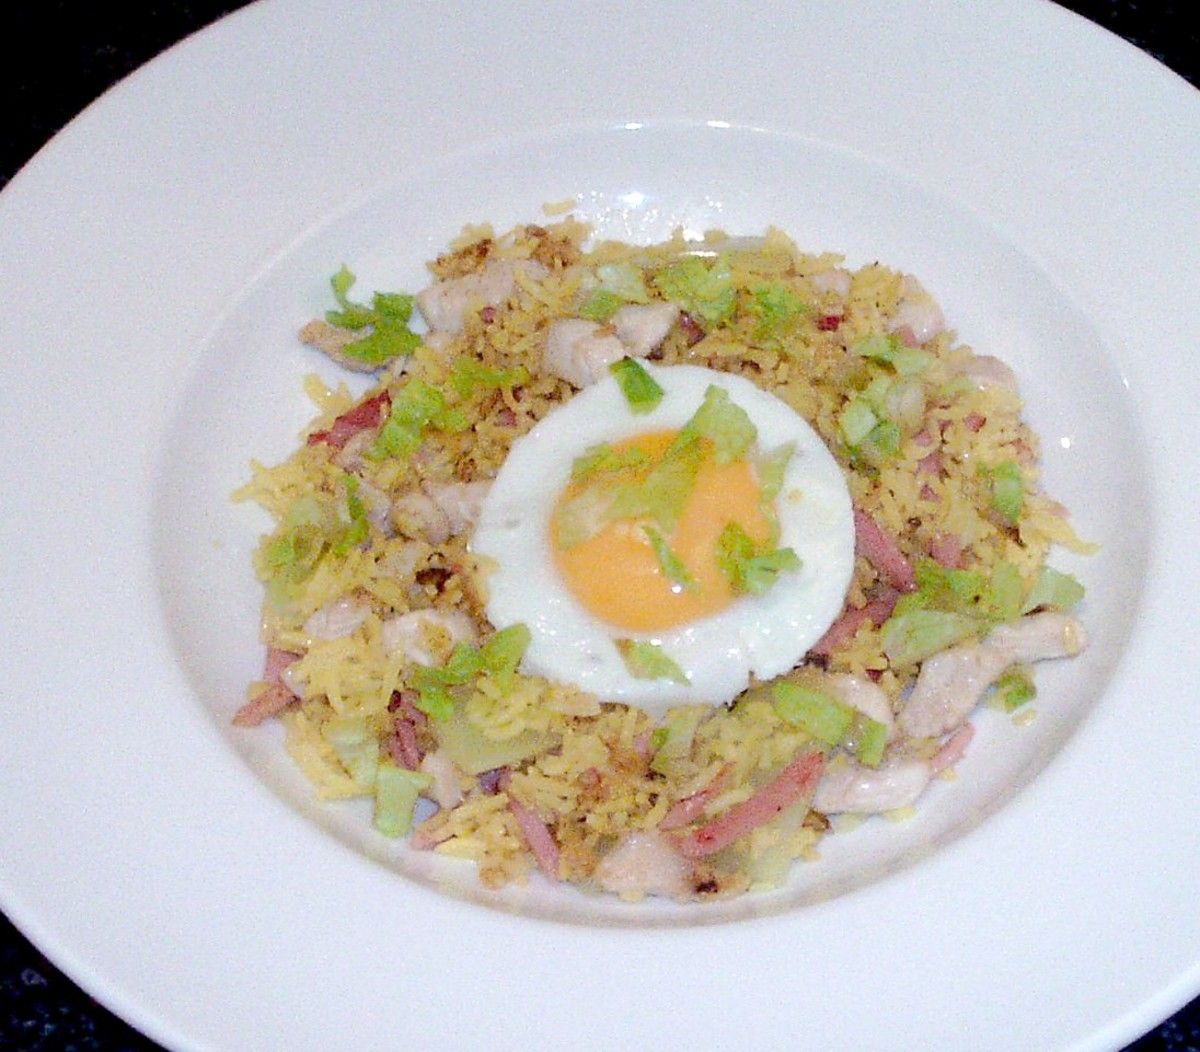 Celtuce chicken and ham fried rice is served with a fried egg